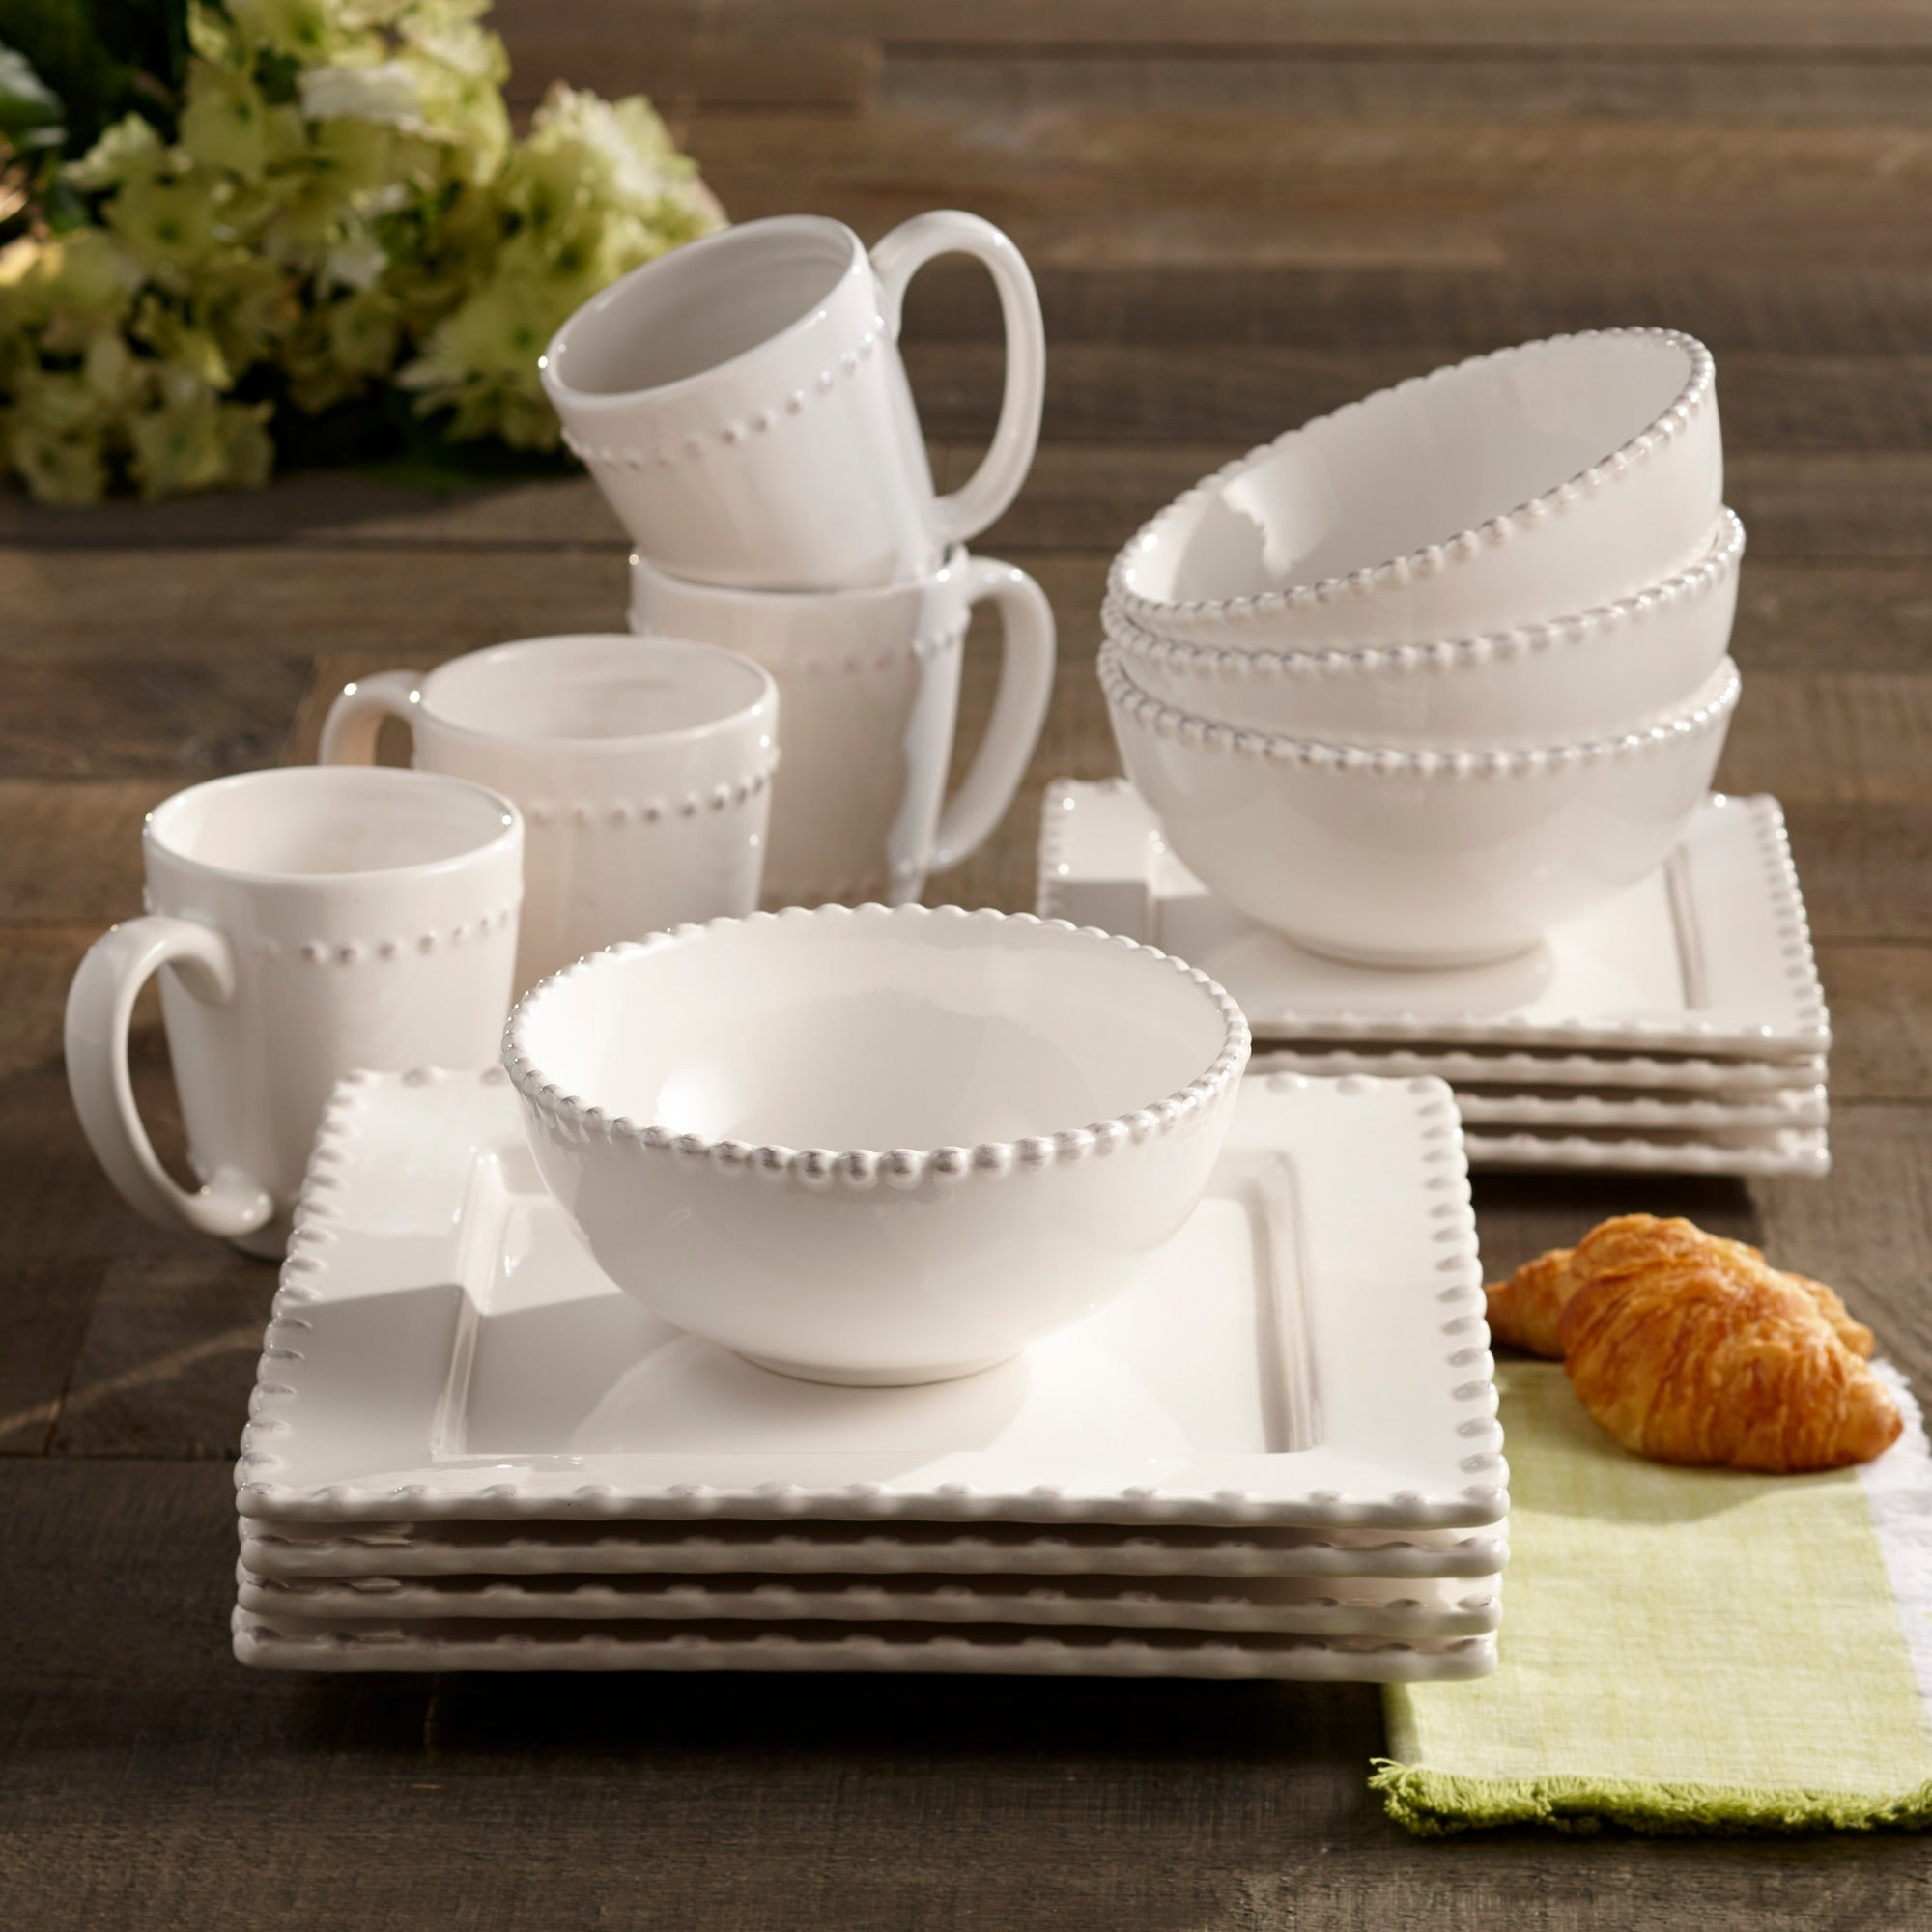 American Atelier Bianca Bead White Square 16-piece Dinnerware Set - Free Shipping Today - Overstock - 16446201 & American Atelier Bianca Bead White Square 16-piece Dinnerware Set ...